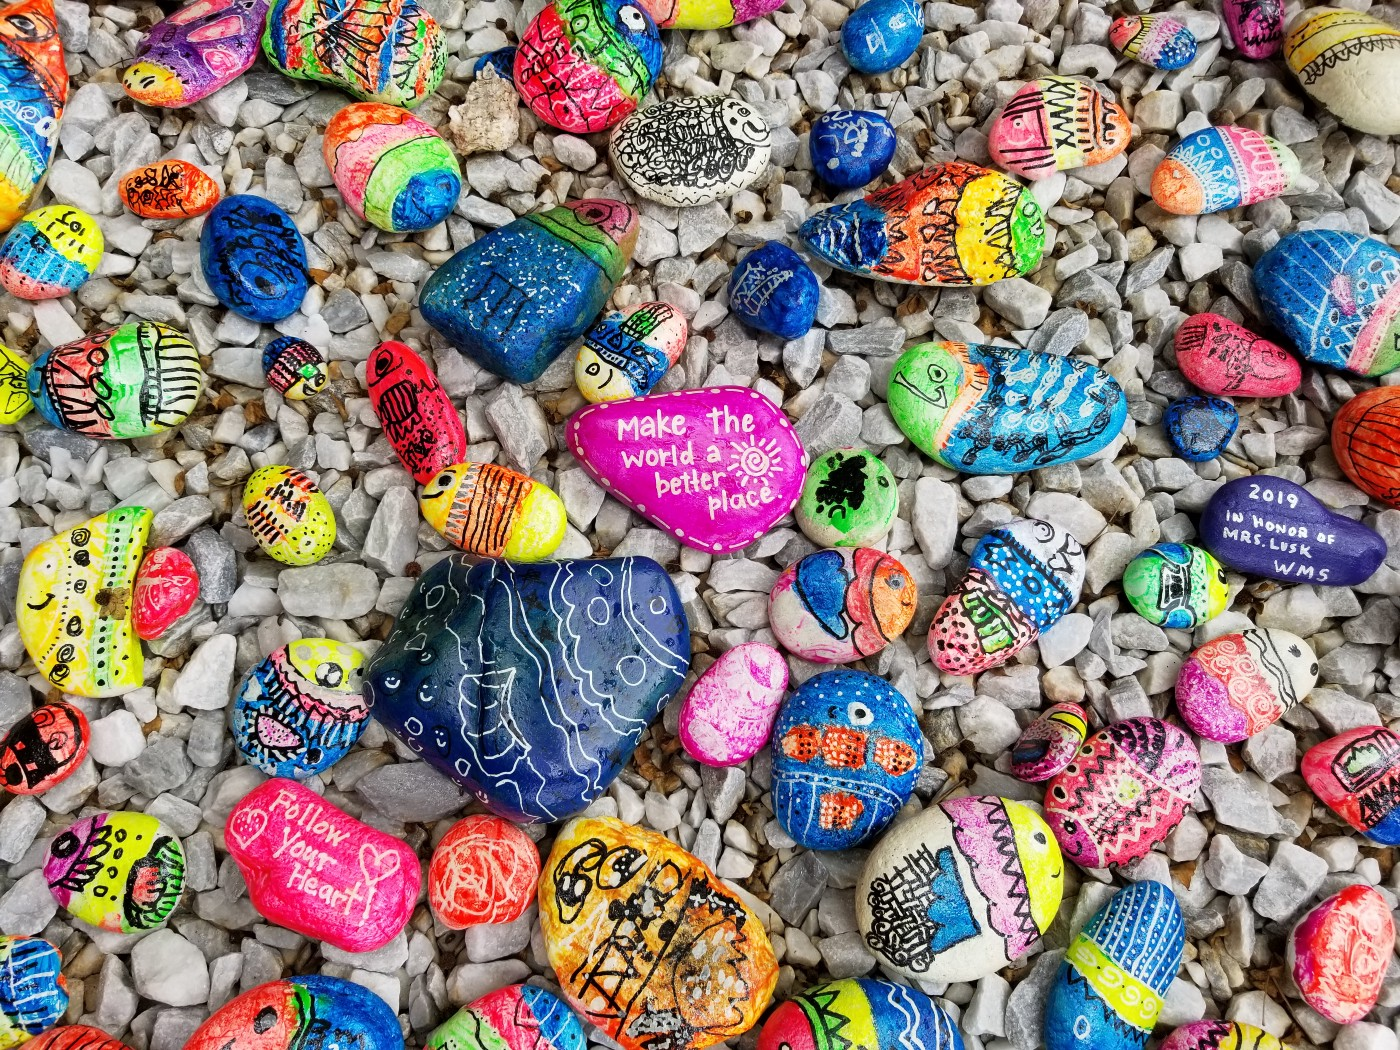 Picture of painted rocks with affirmations painted on them